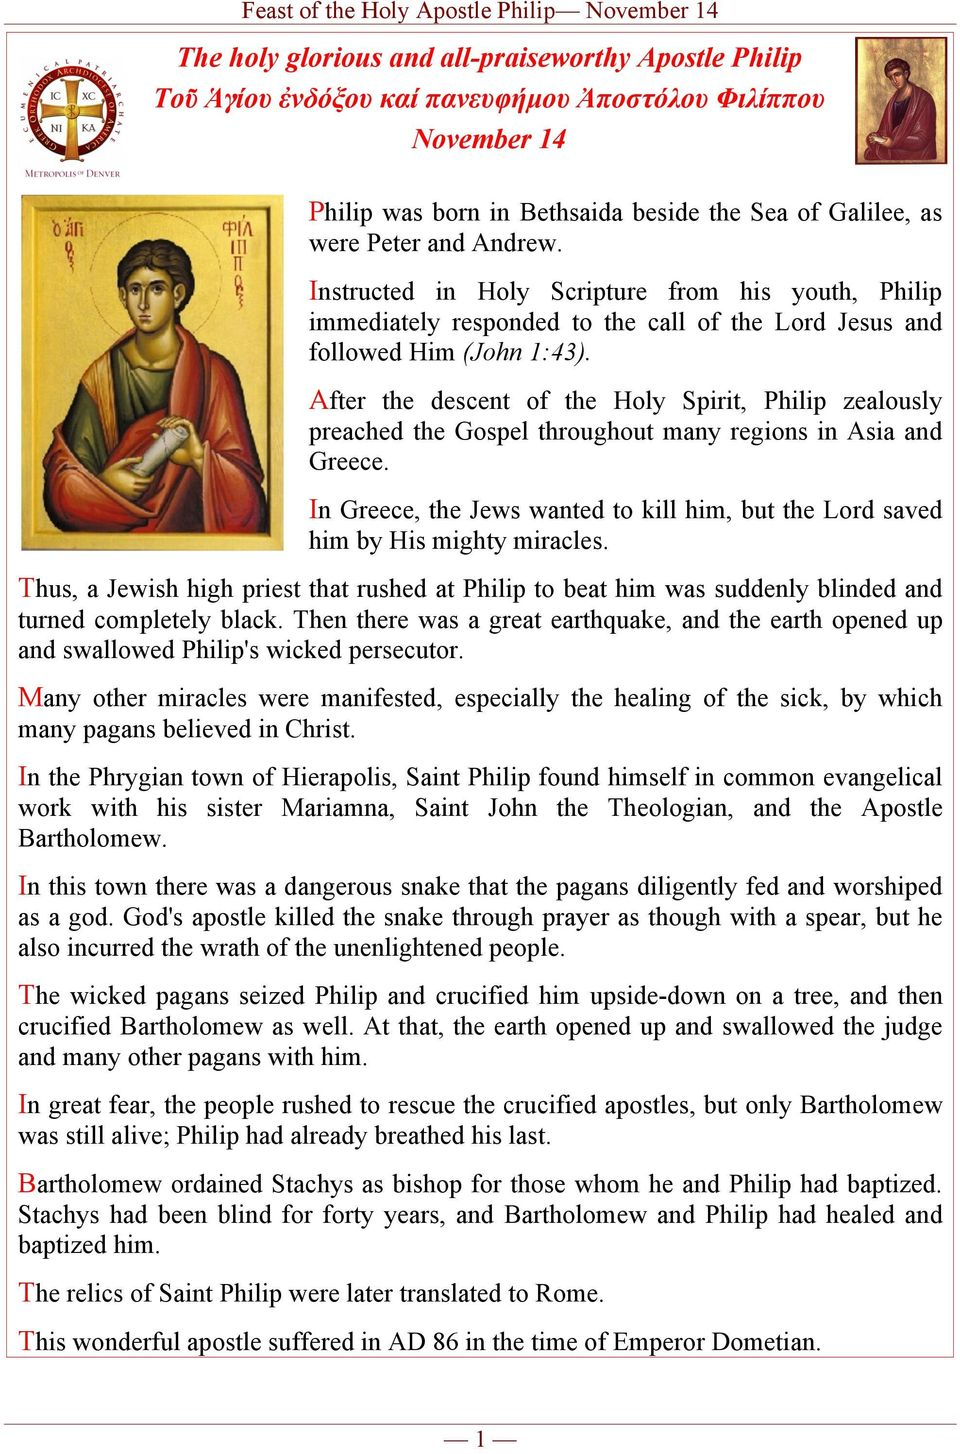 After the descent of the Holy Spirit, Philip zealously preached the Gospel throughout many regions in Asia and Greece.